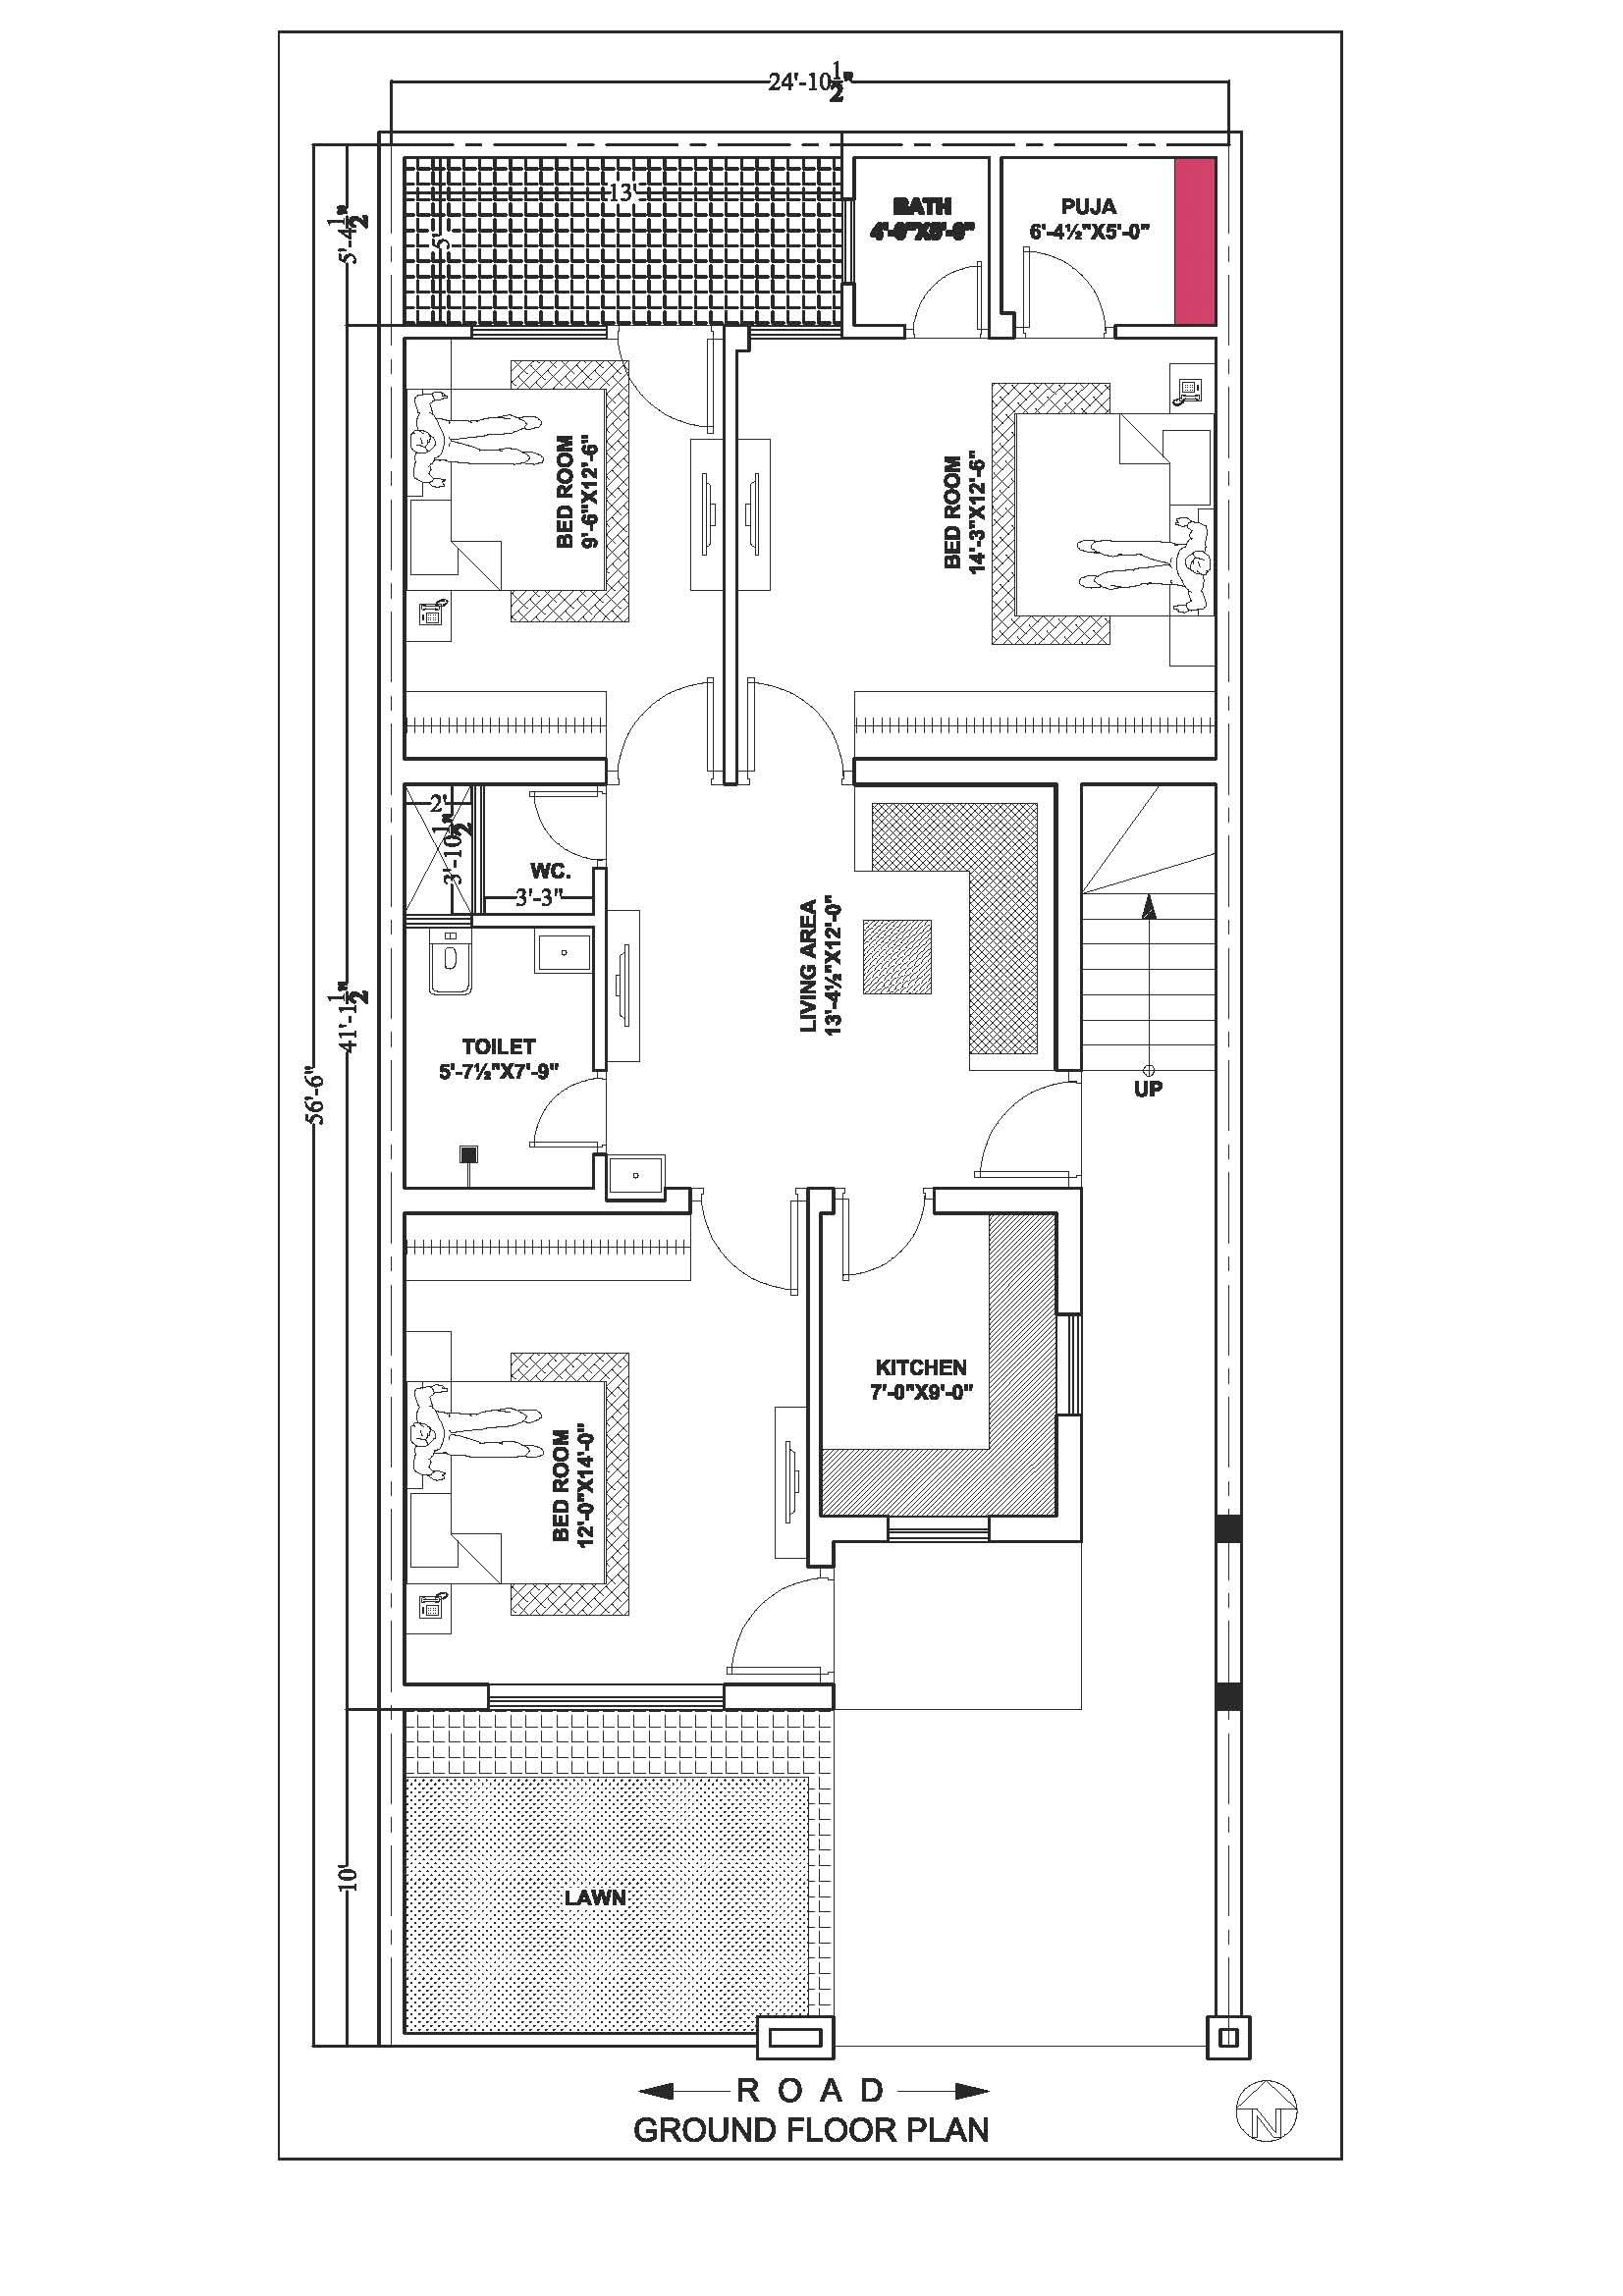 ground floor second option house layout plans layouts also single elevation designing photos home designs rh pinterest